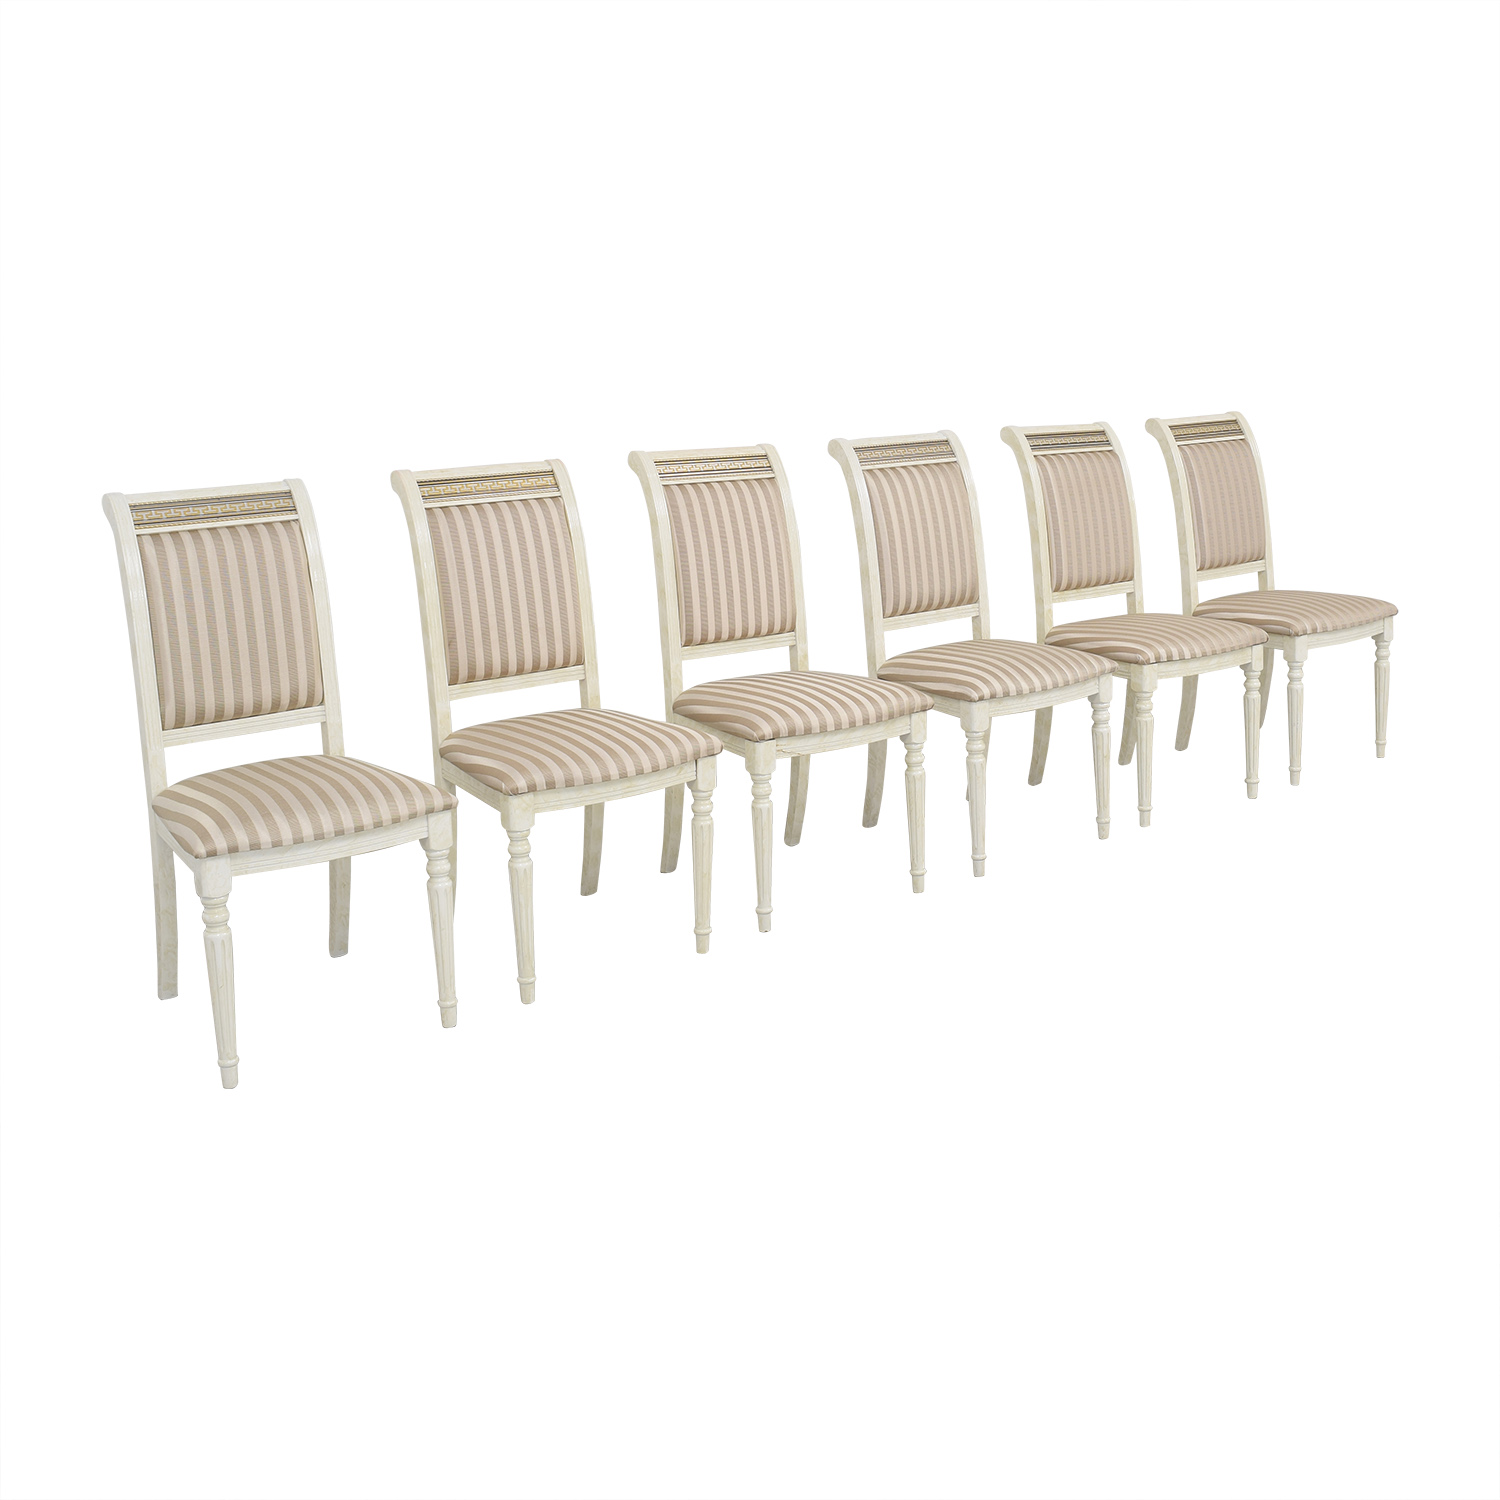 shop Arredoclassic Italy Dining Chairs Arredoclassic Dining Chairs